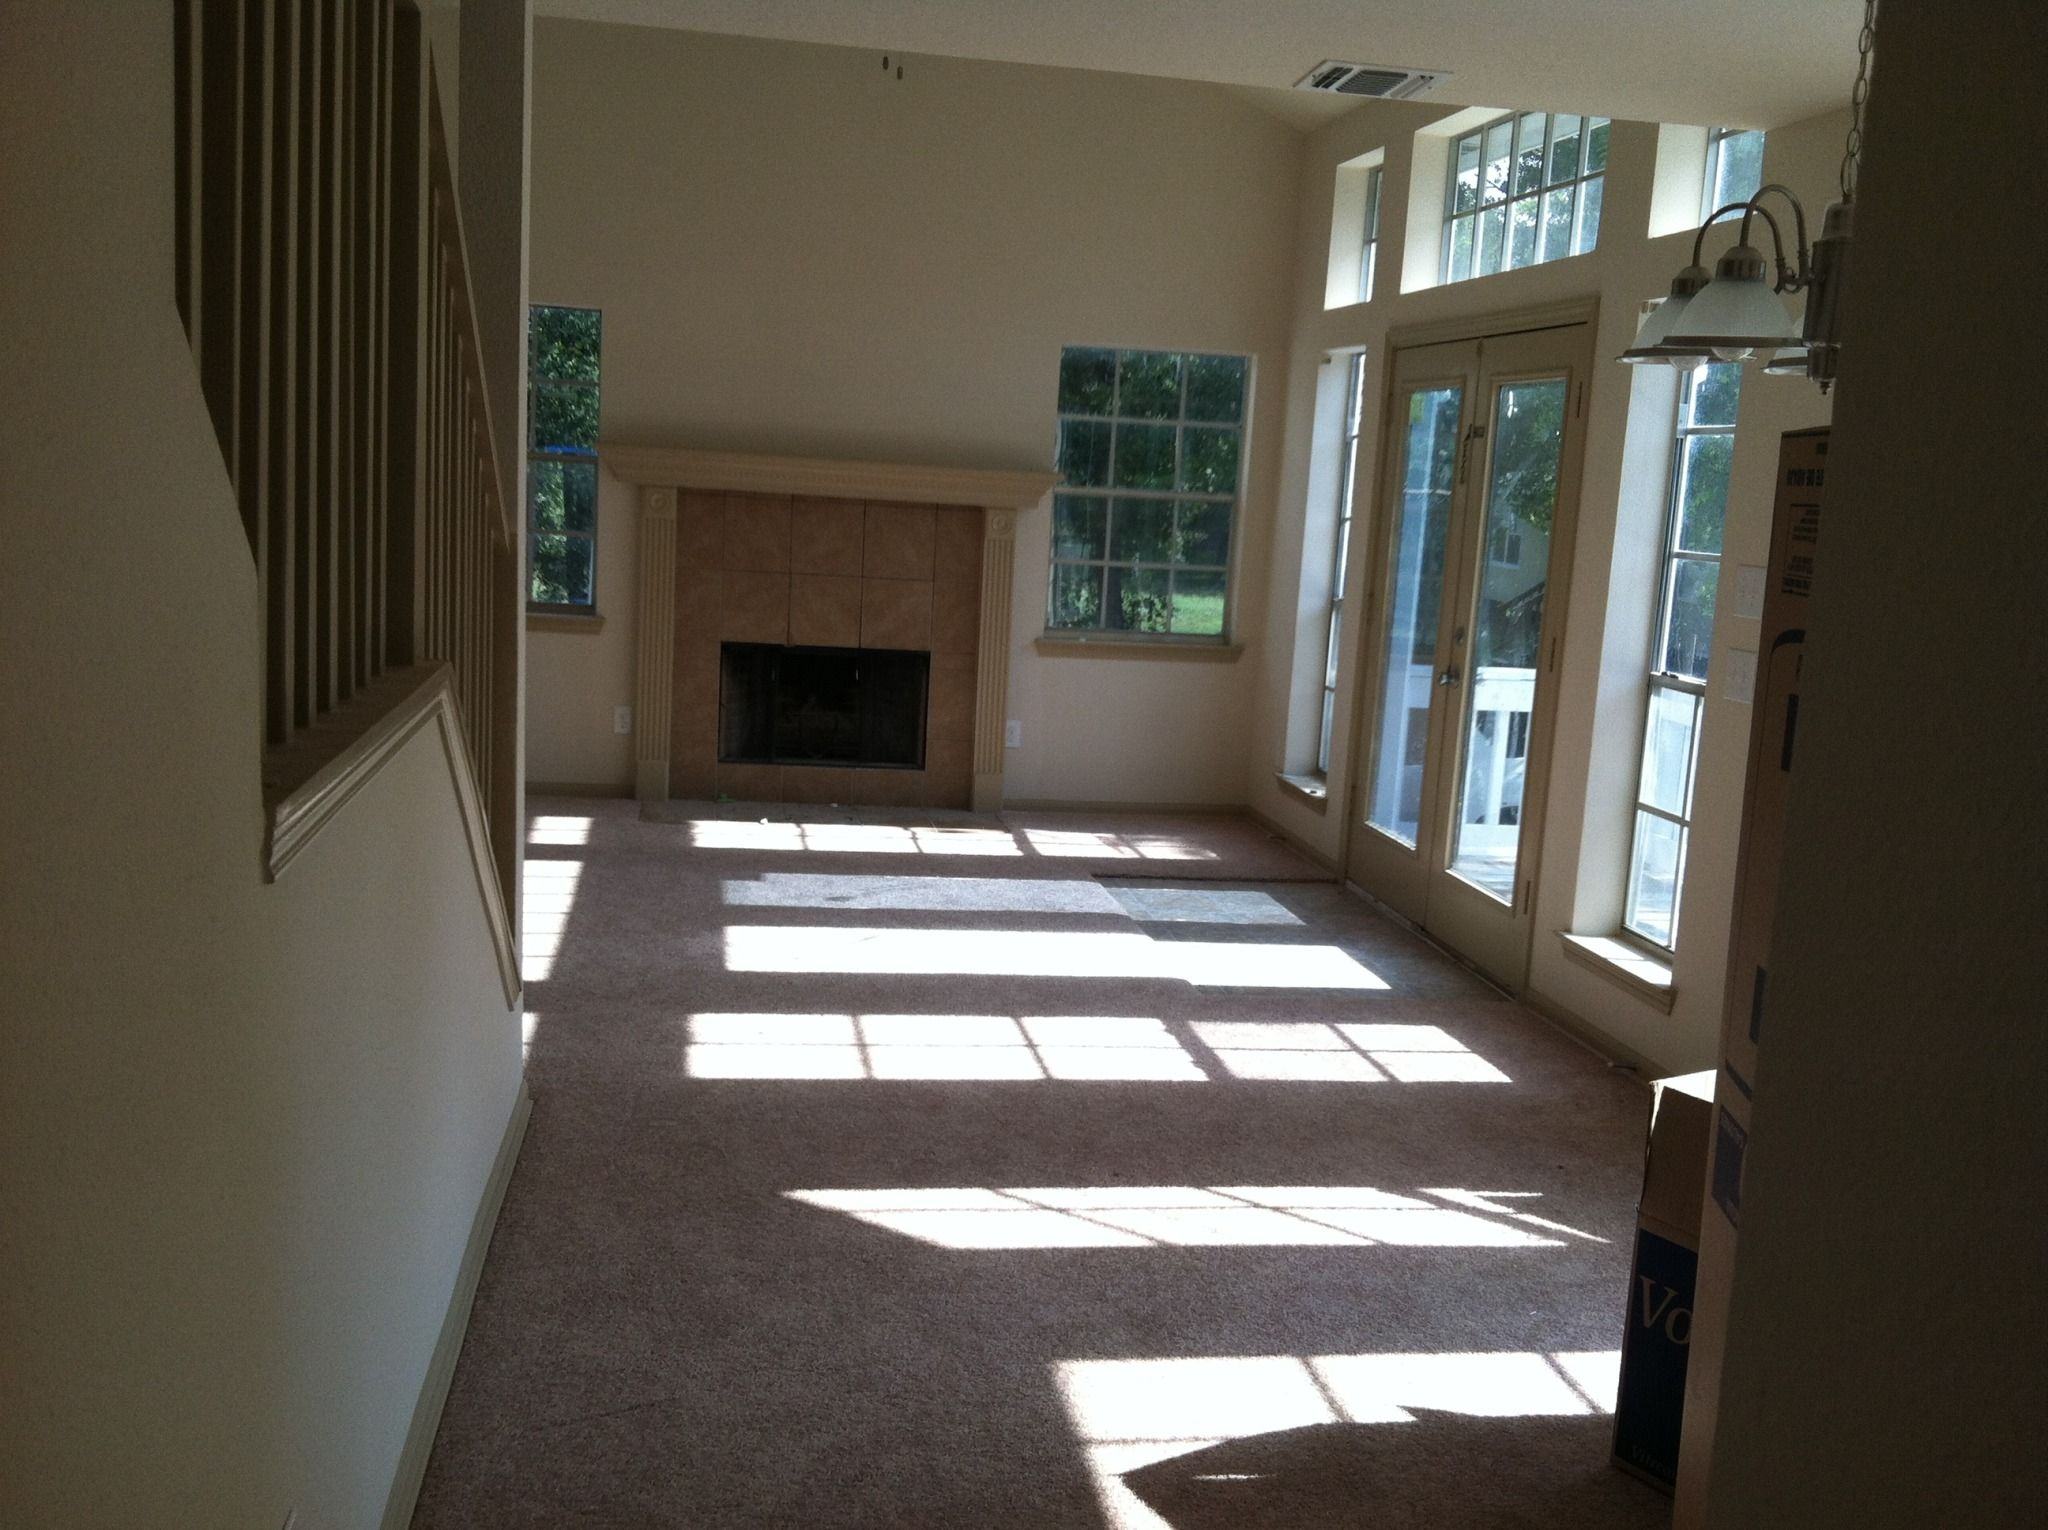 All-natural light for the all-natural enthusiast. #UBH #UBHFamily #CustomBuilt